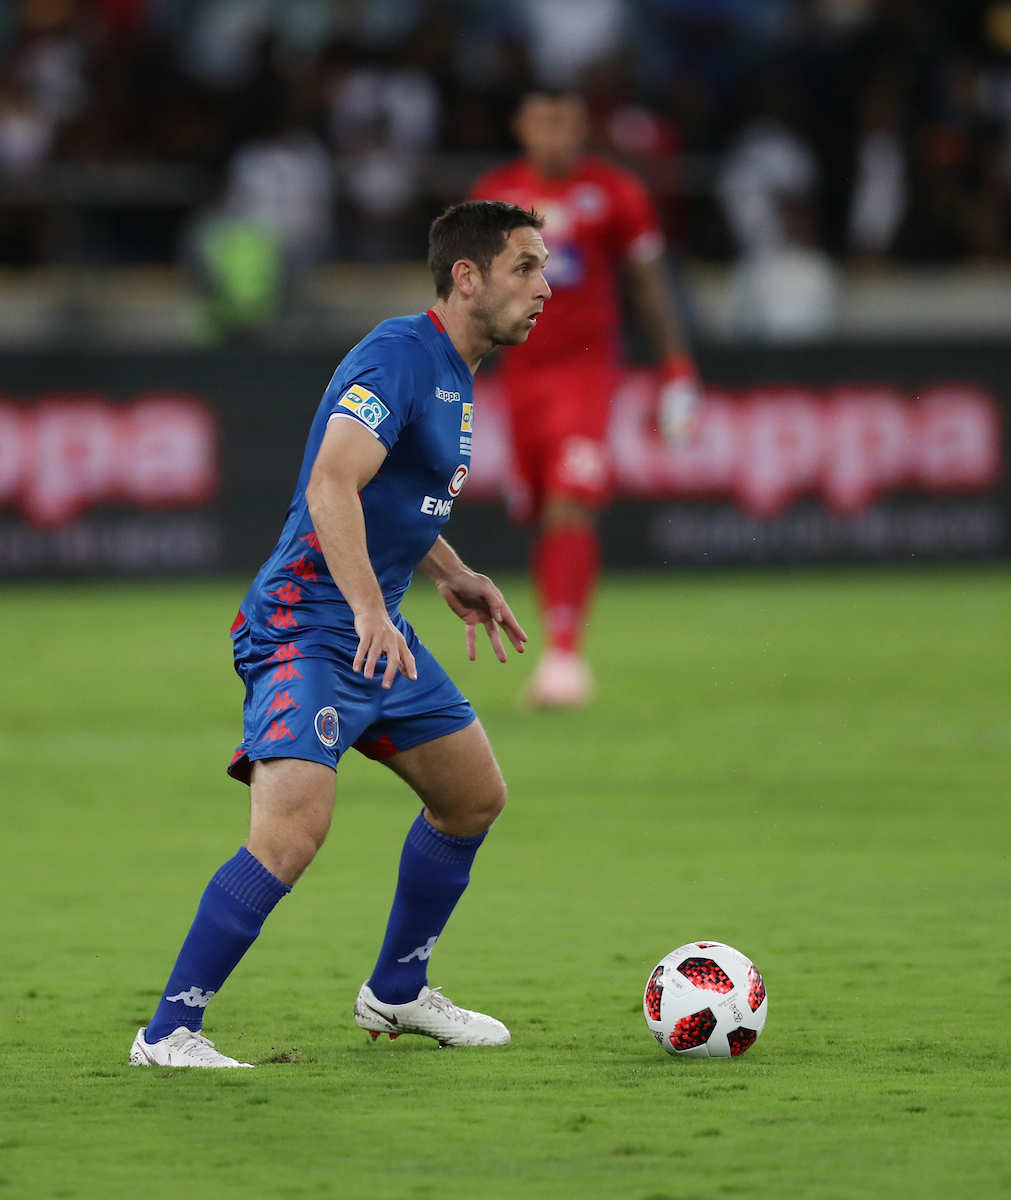 ean Furman (C) of SuperSport United during the 2018 MTN8 final match between SuperSport United and Cape Town City at the Moses Mabhida Stadium on 29th September 2018 in Durban, South Africa. (Photo by Steve Haag/)